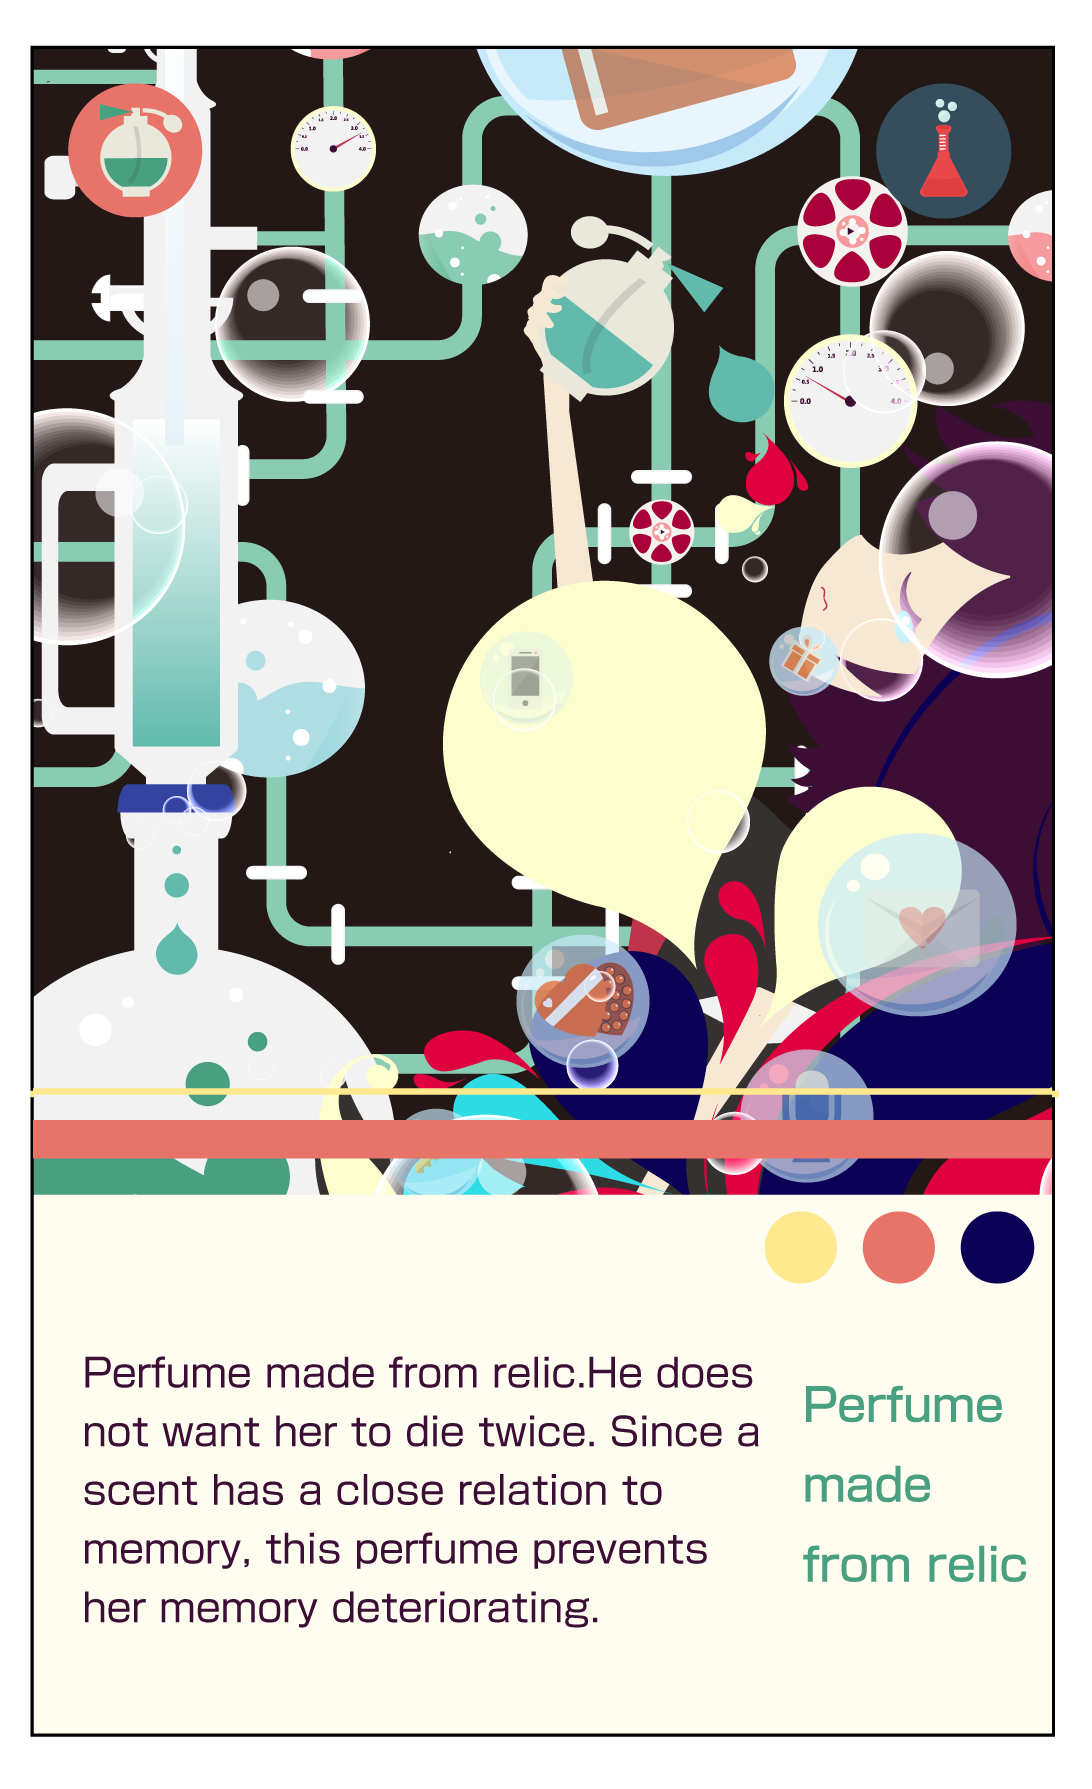 Perfume made ​​from relic.He does not want her to die twice. Since a scent has a close relation to memory, this perfume prevents her memory deteriorating. #Premonition